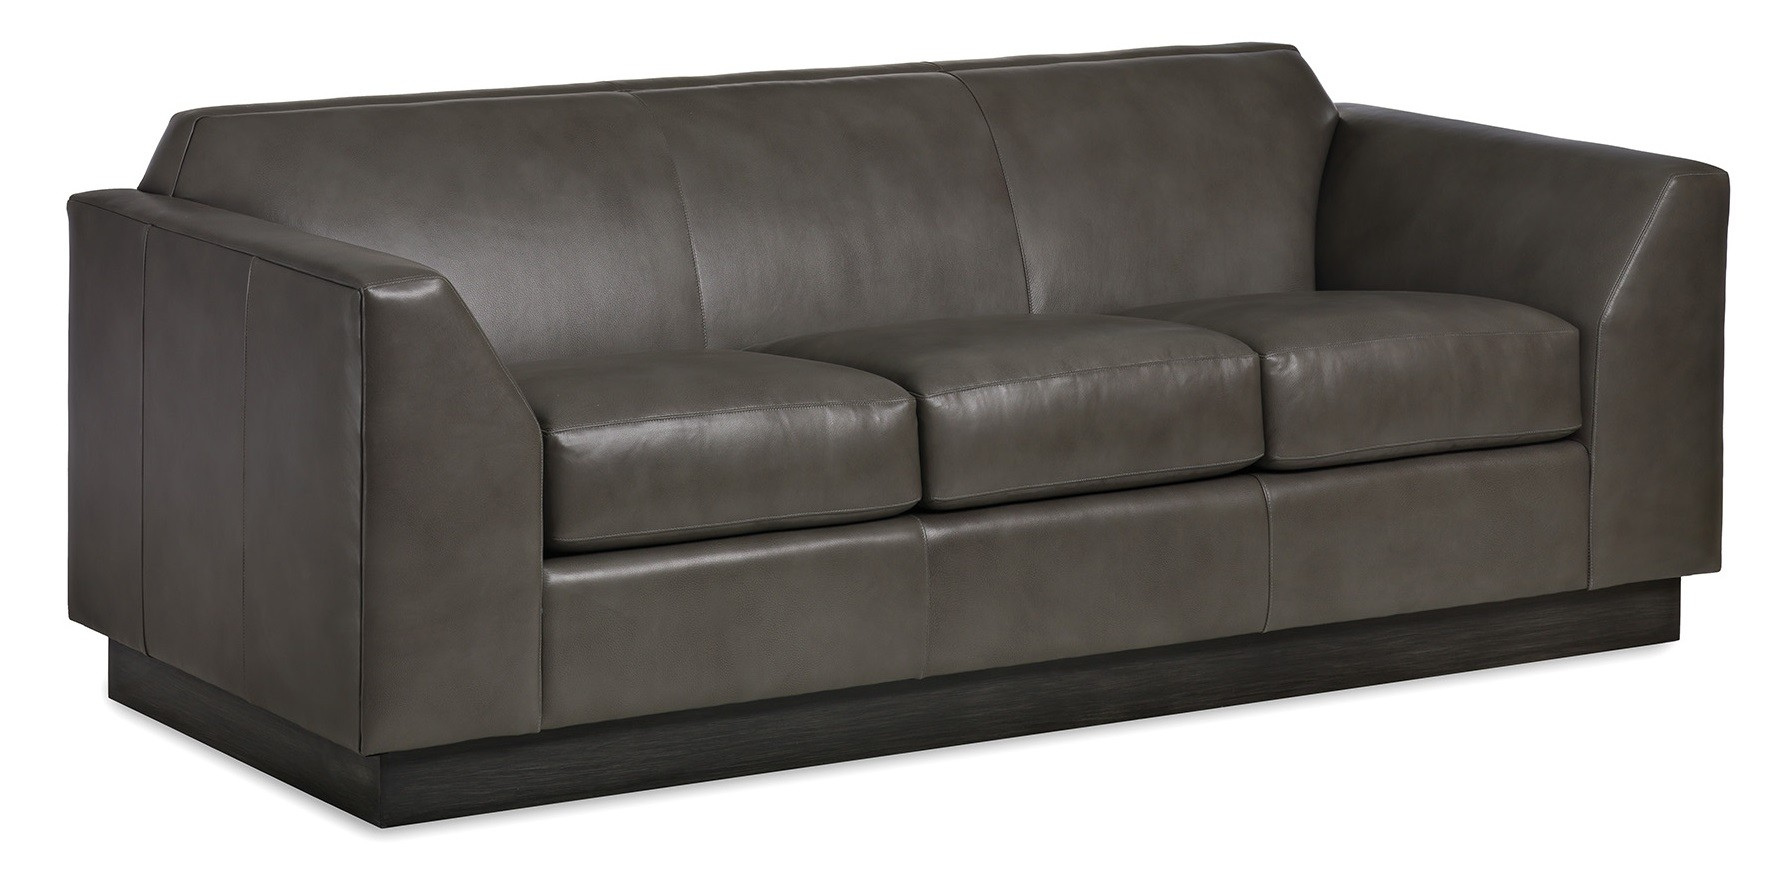 High End Slate Gray Leather Sofa